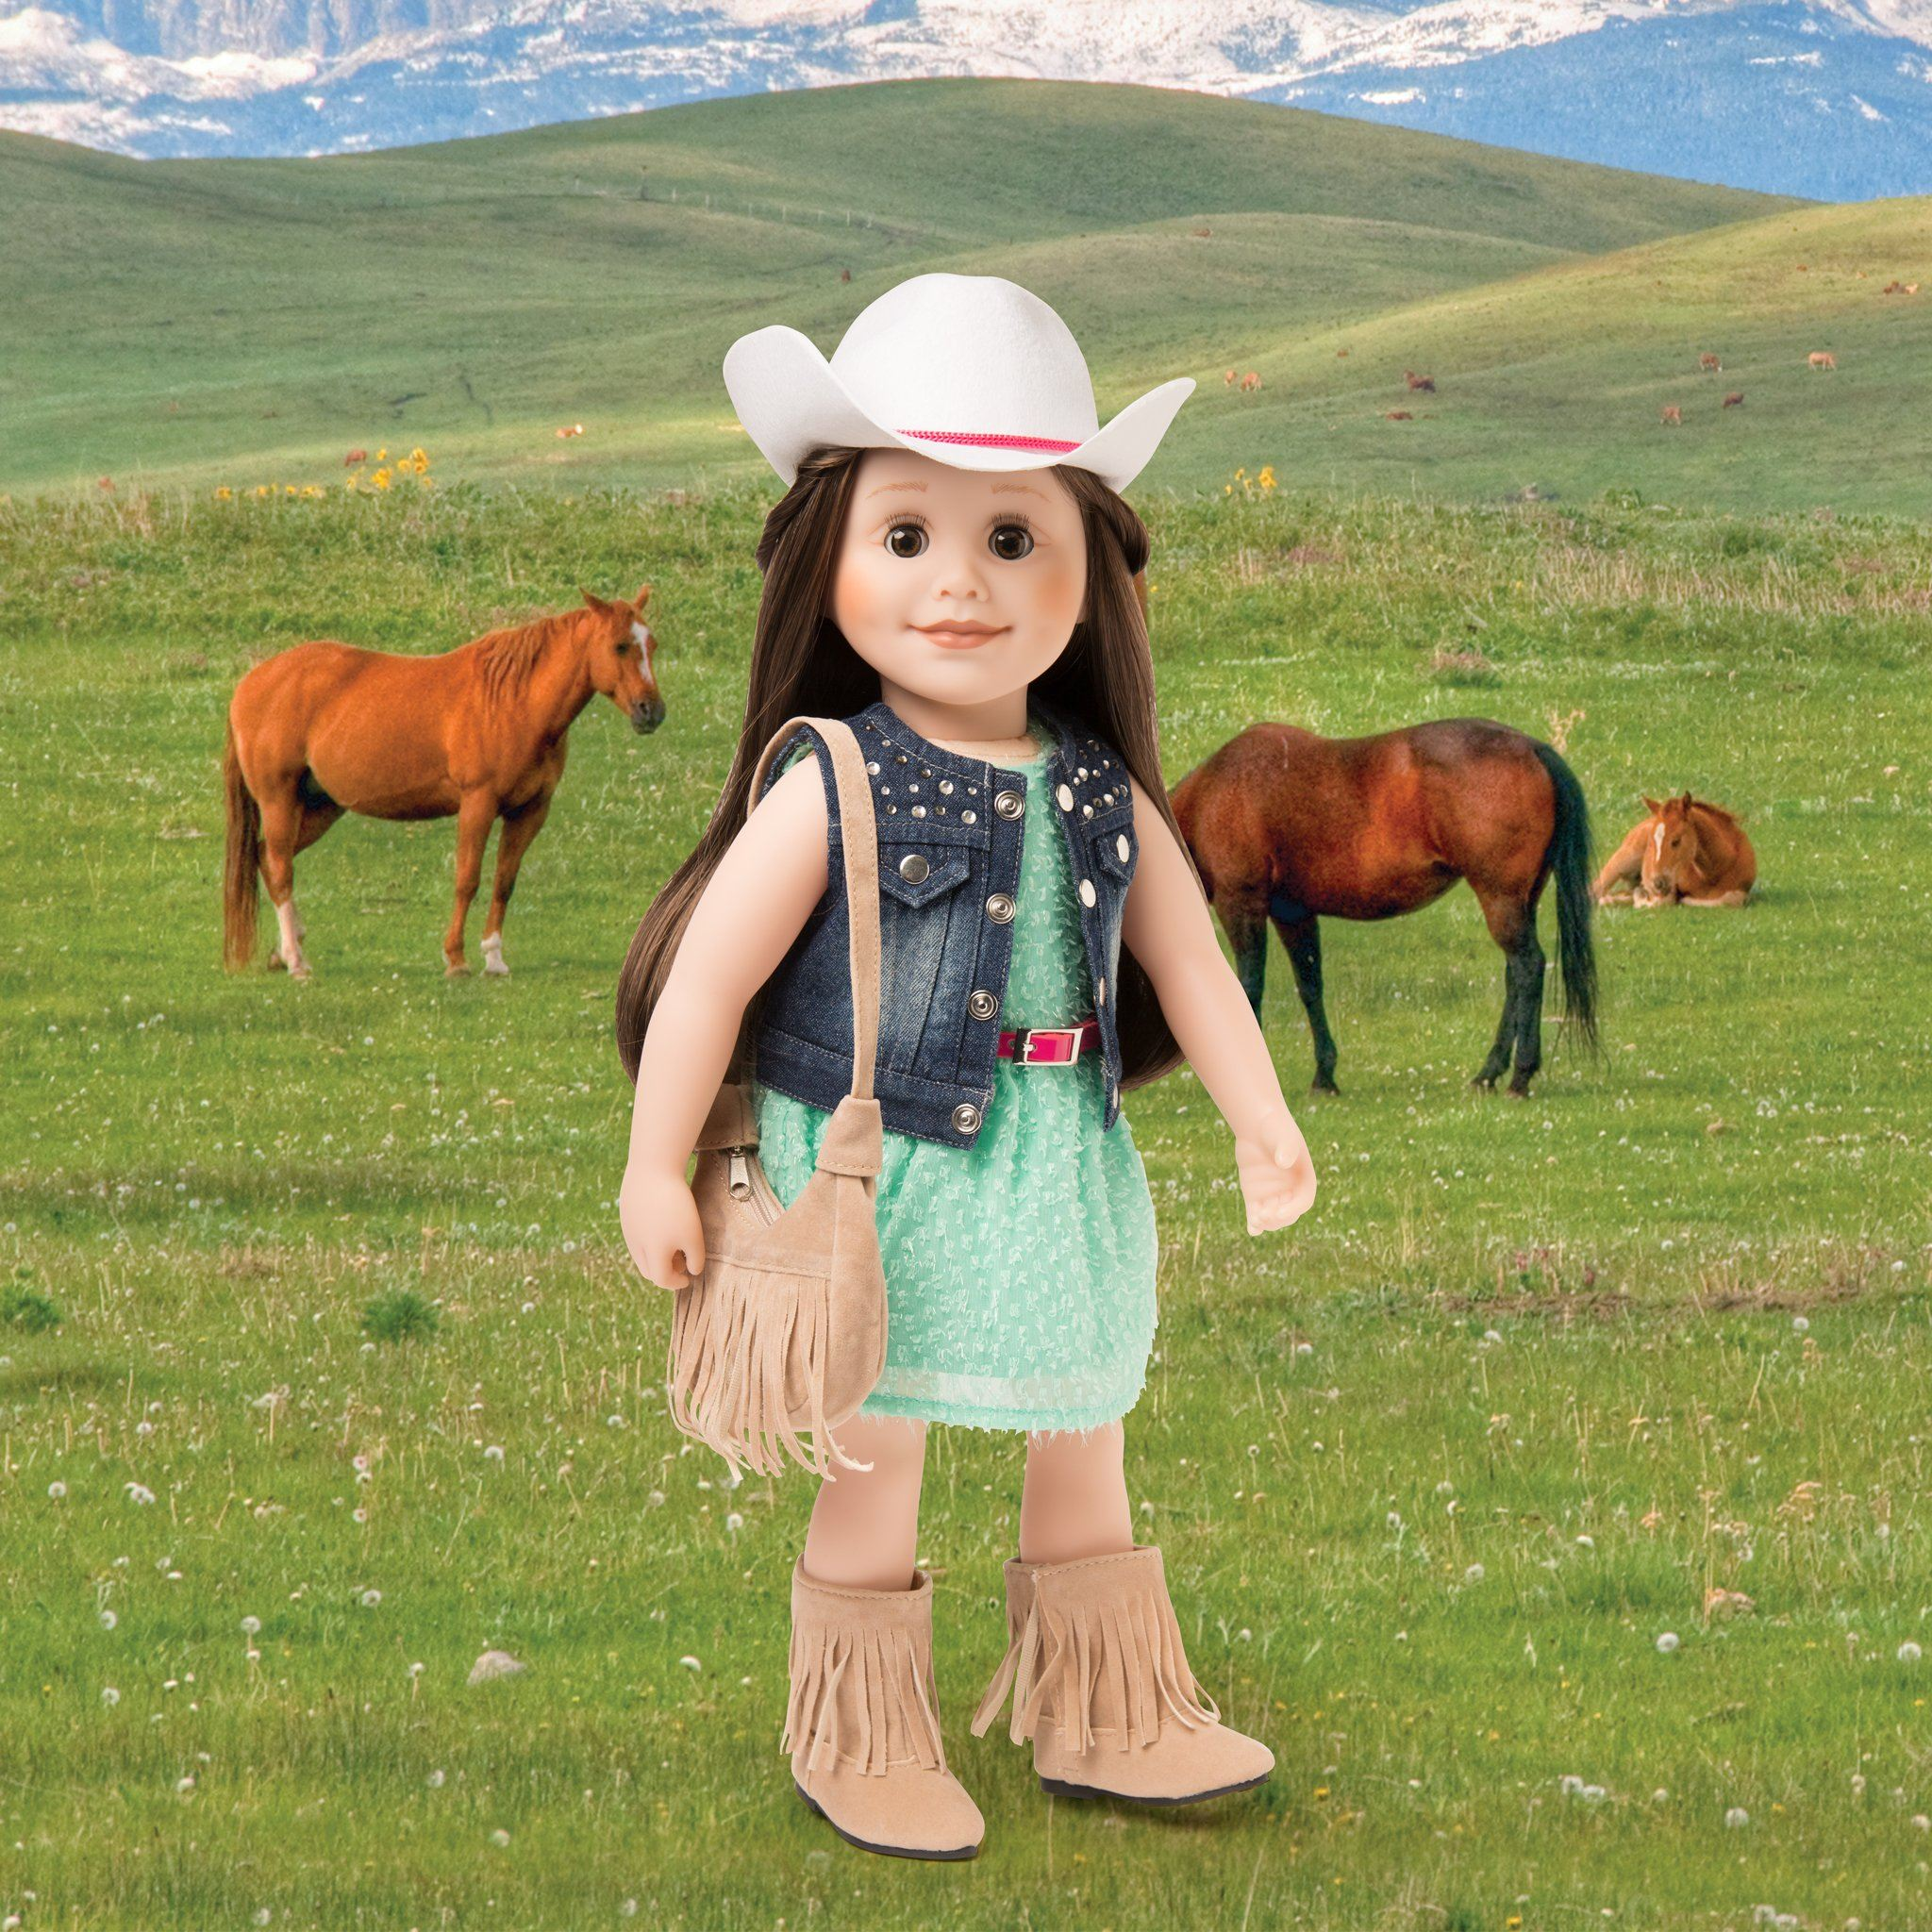 Western fringed purse and boot accessory set shown with Stampede Style outfit on 18 inch doll.